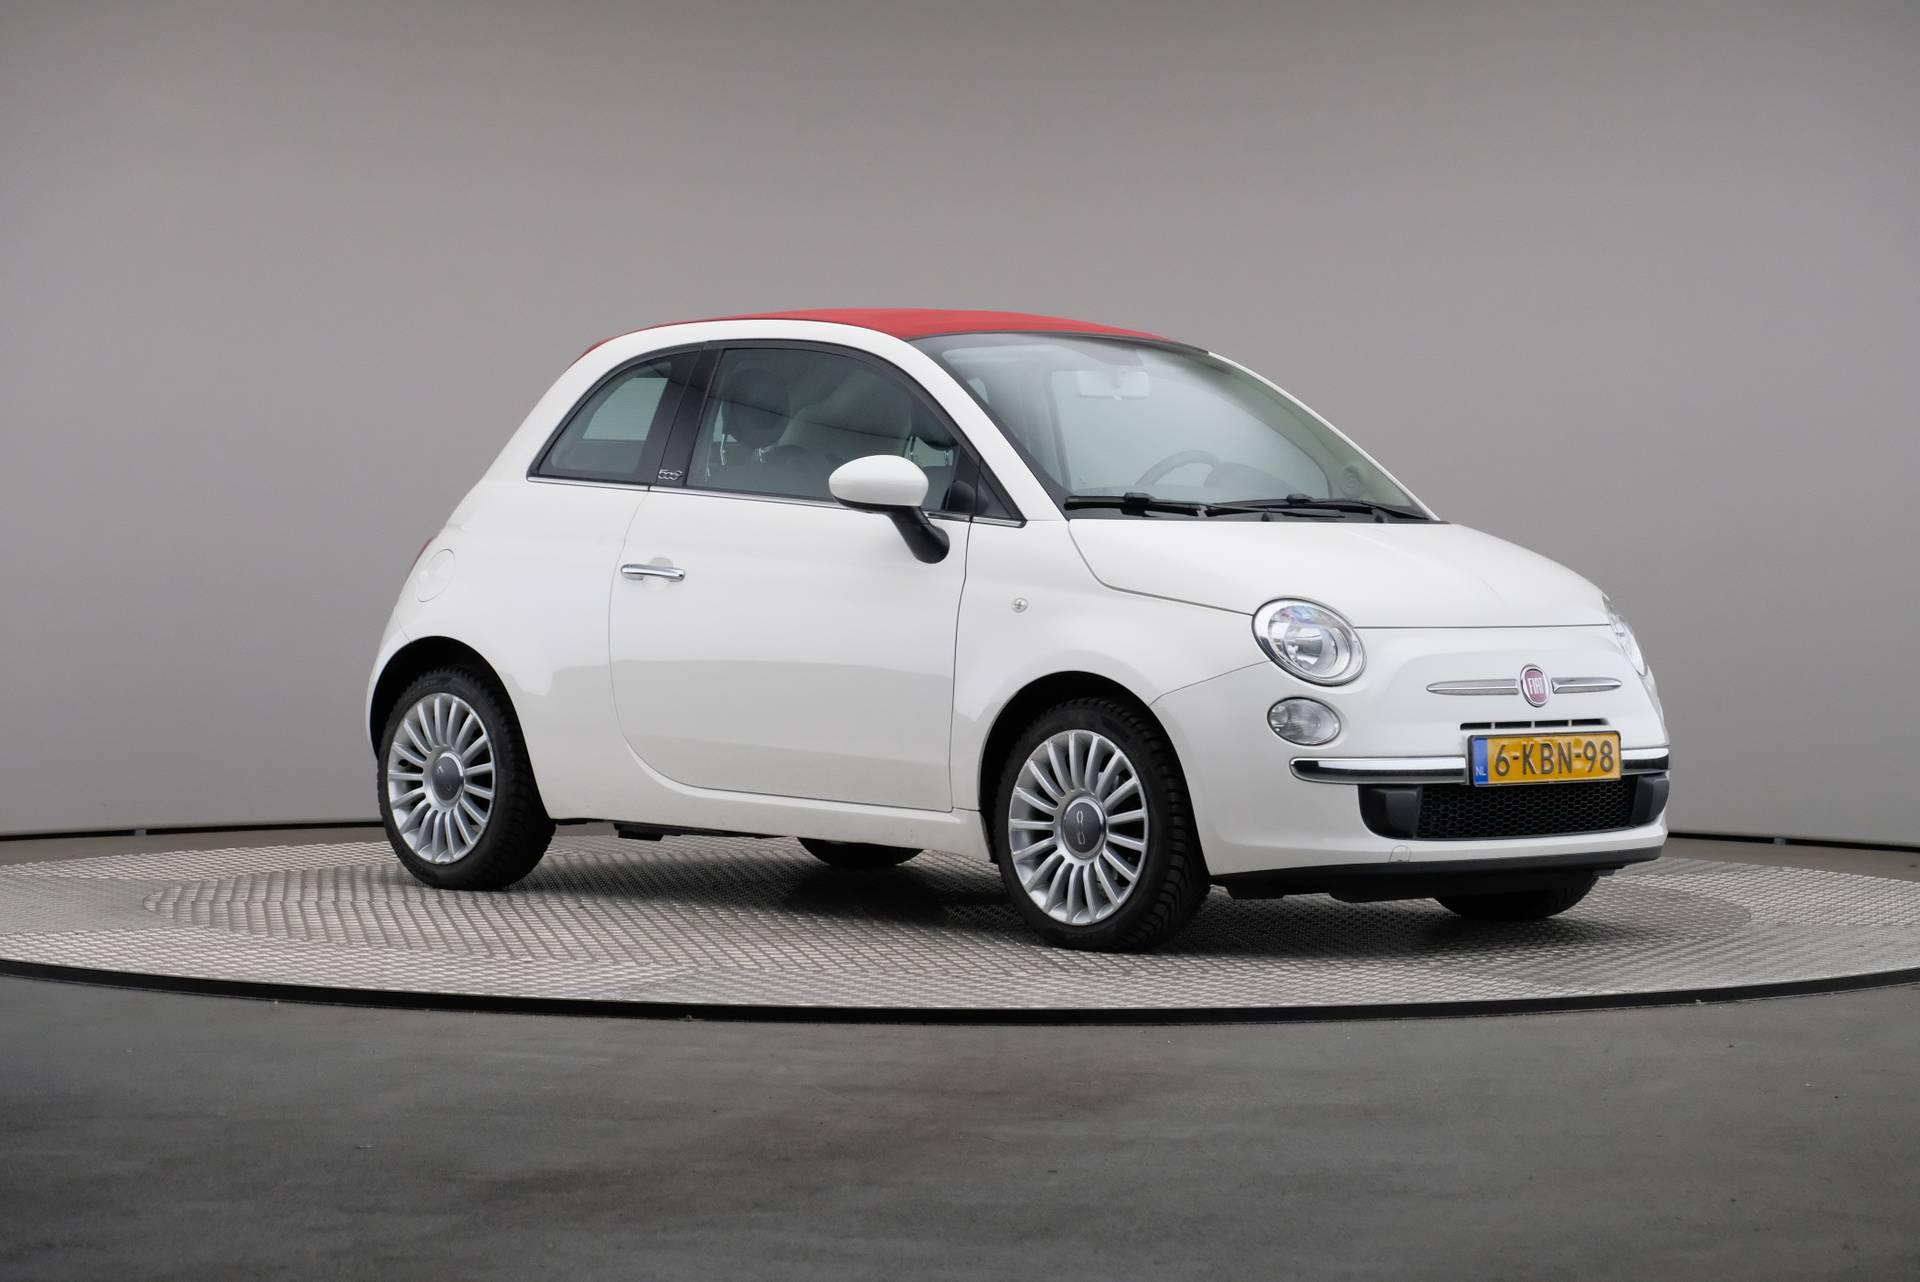 Fiat 500C TwinAir Turbo 85 Lounge, Airconditioning, 360-image28